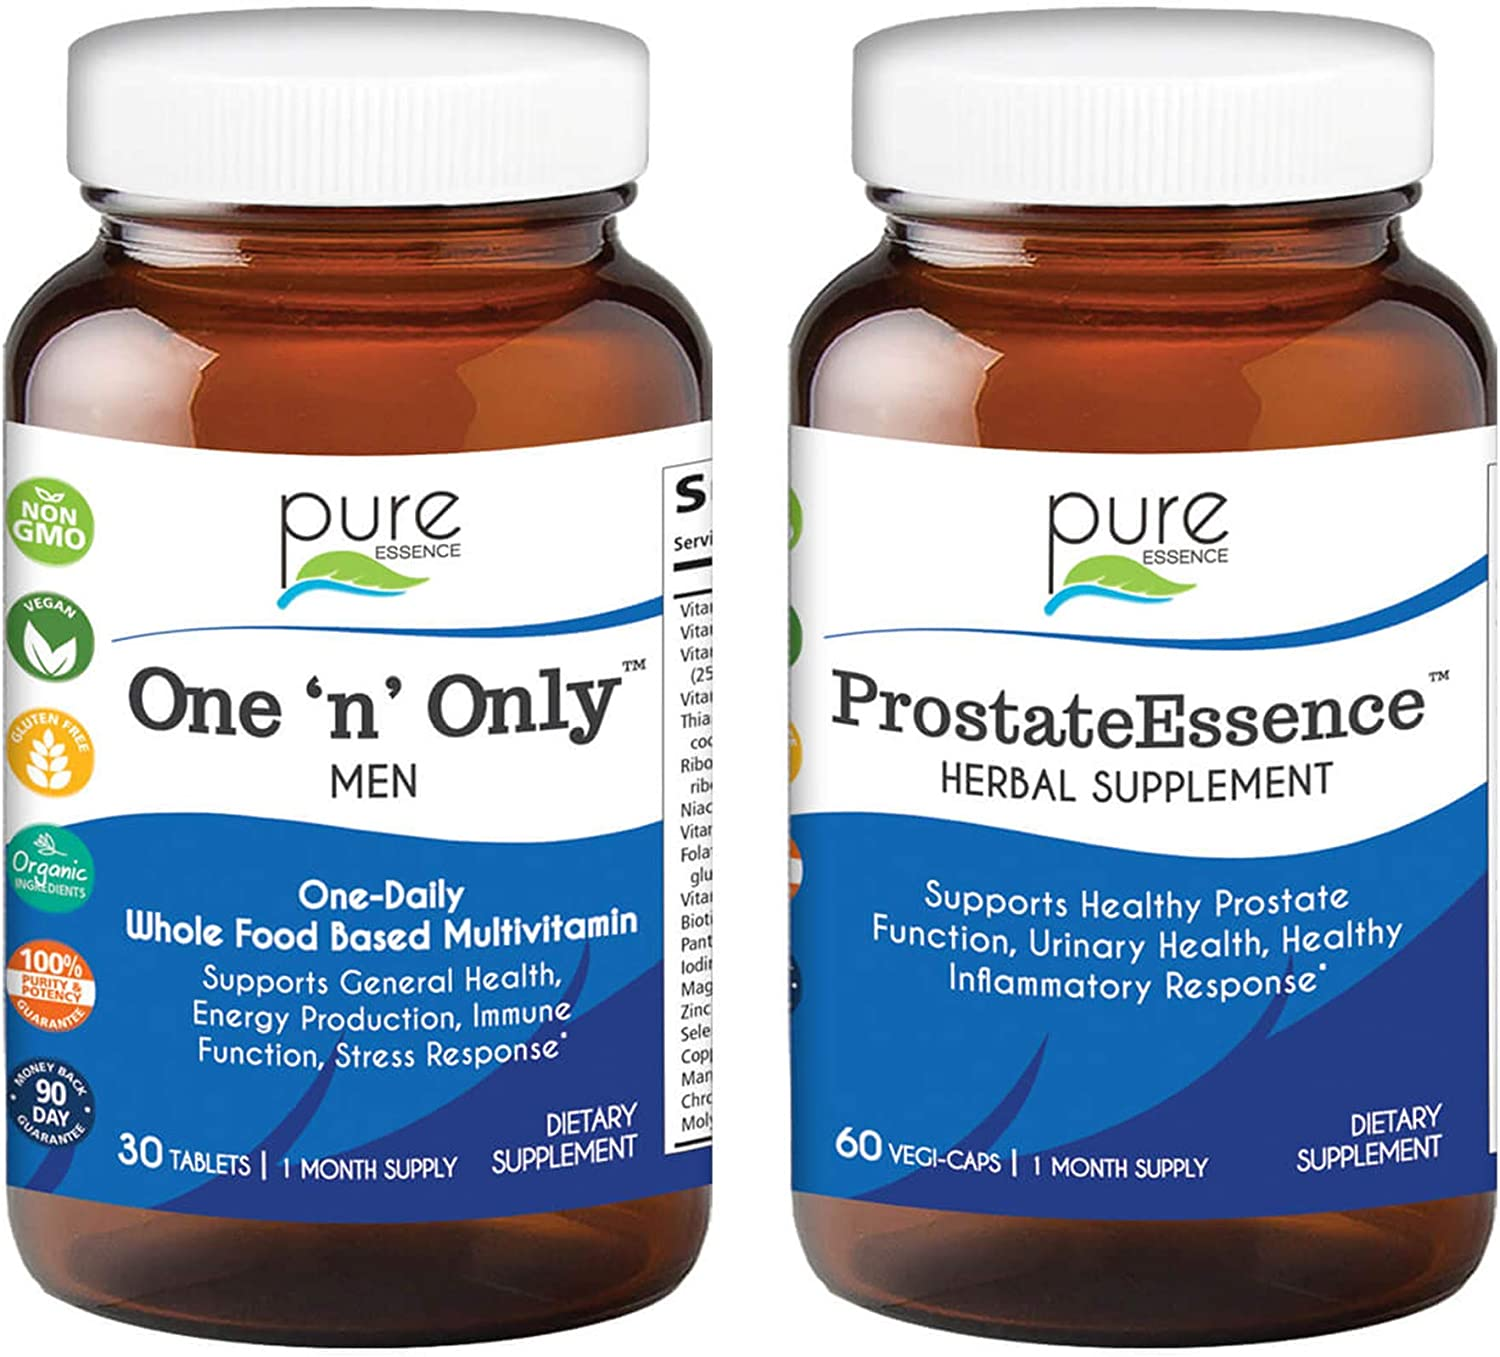 Pure Essence Labs One n Only Multivitamin for Men + Prostate Essence Bundle | All Natural Herbal Vitamins and Supplements w/ D3, Selenium, Zinc, and Beta Sitosterol | One Month Supply